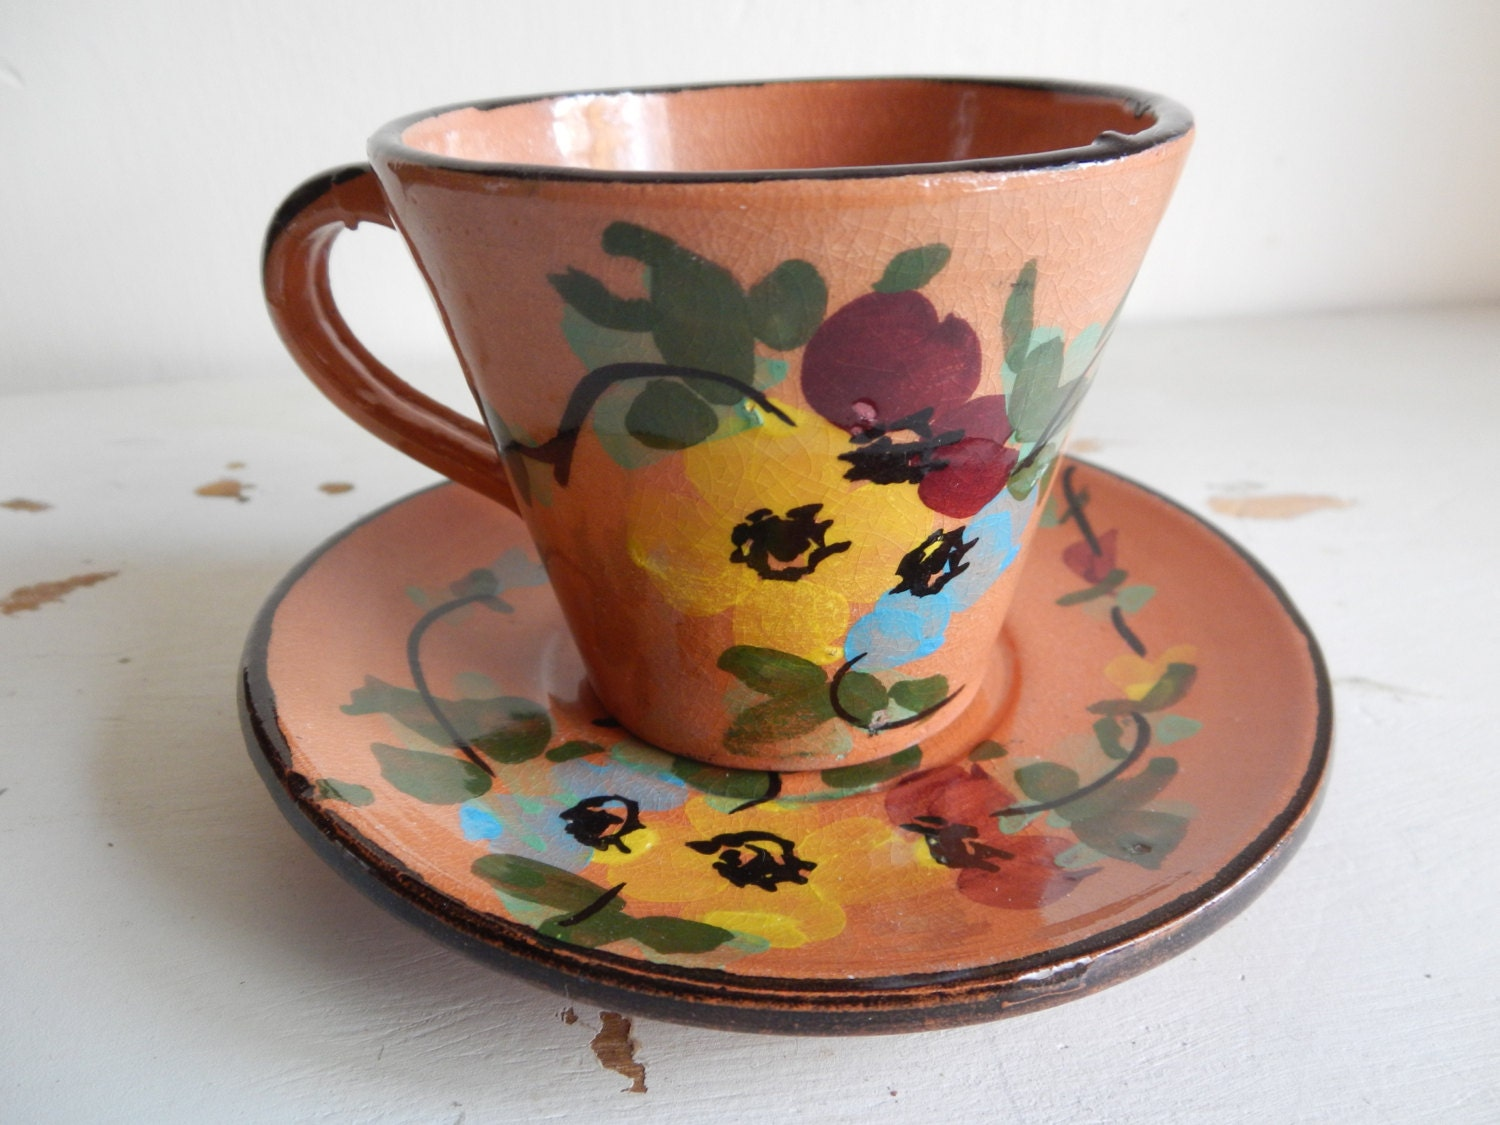 Cute mexican pottery teacup set for Cute pottery designs